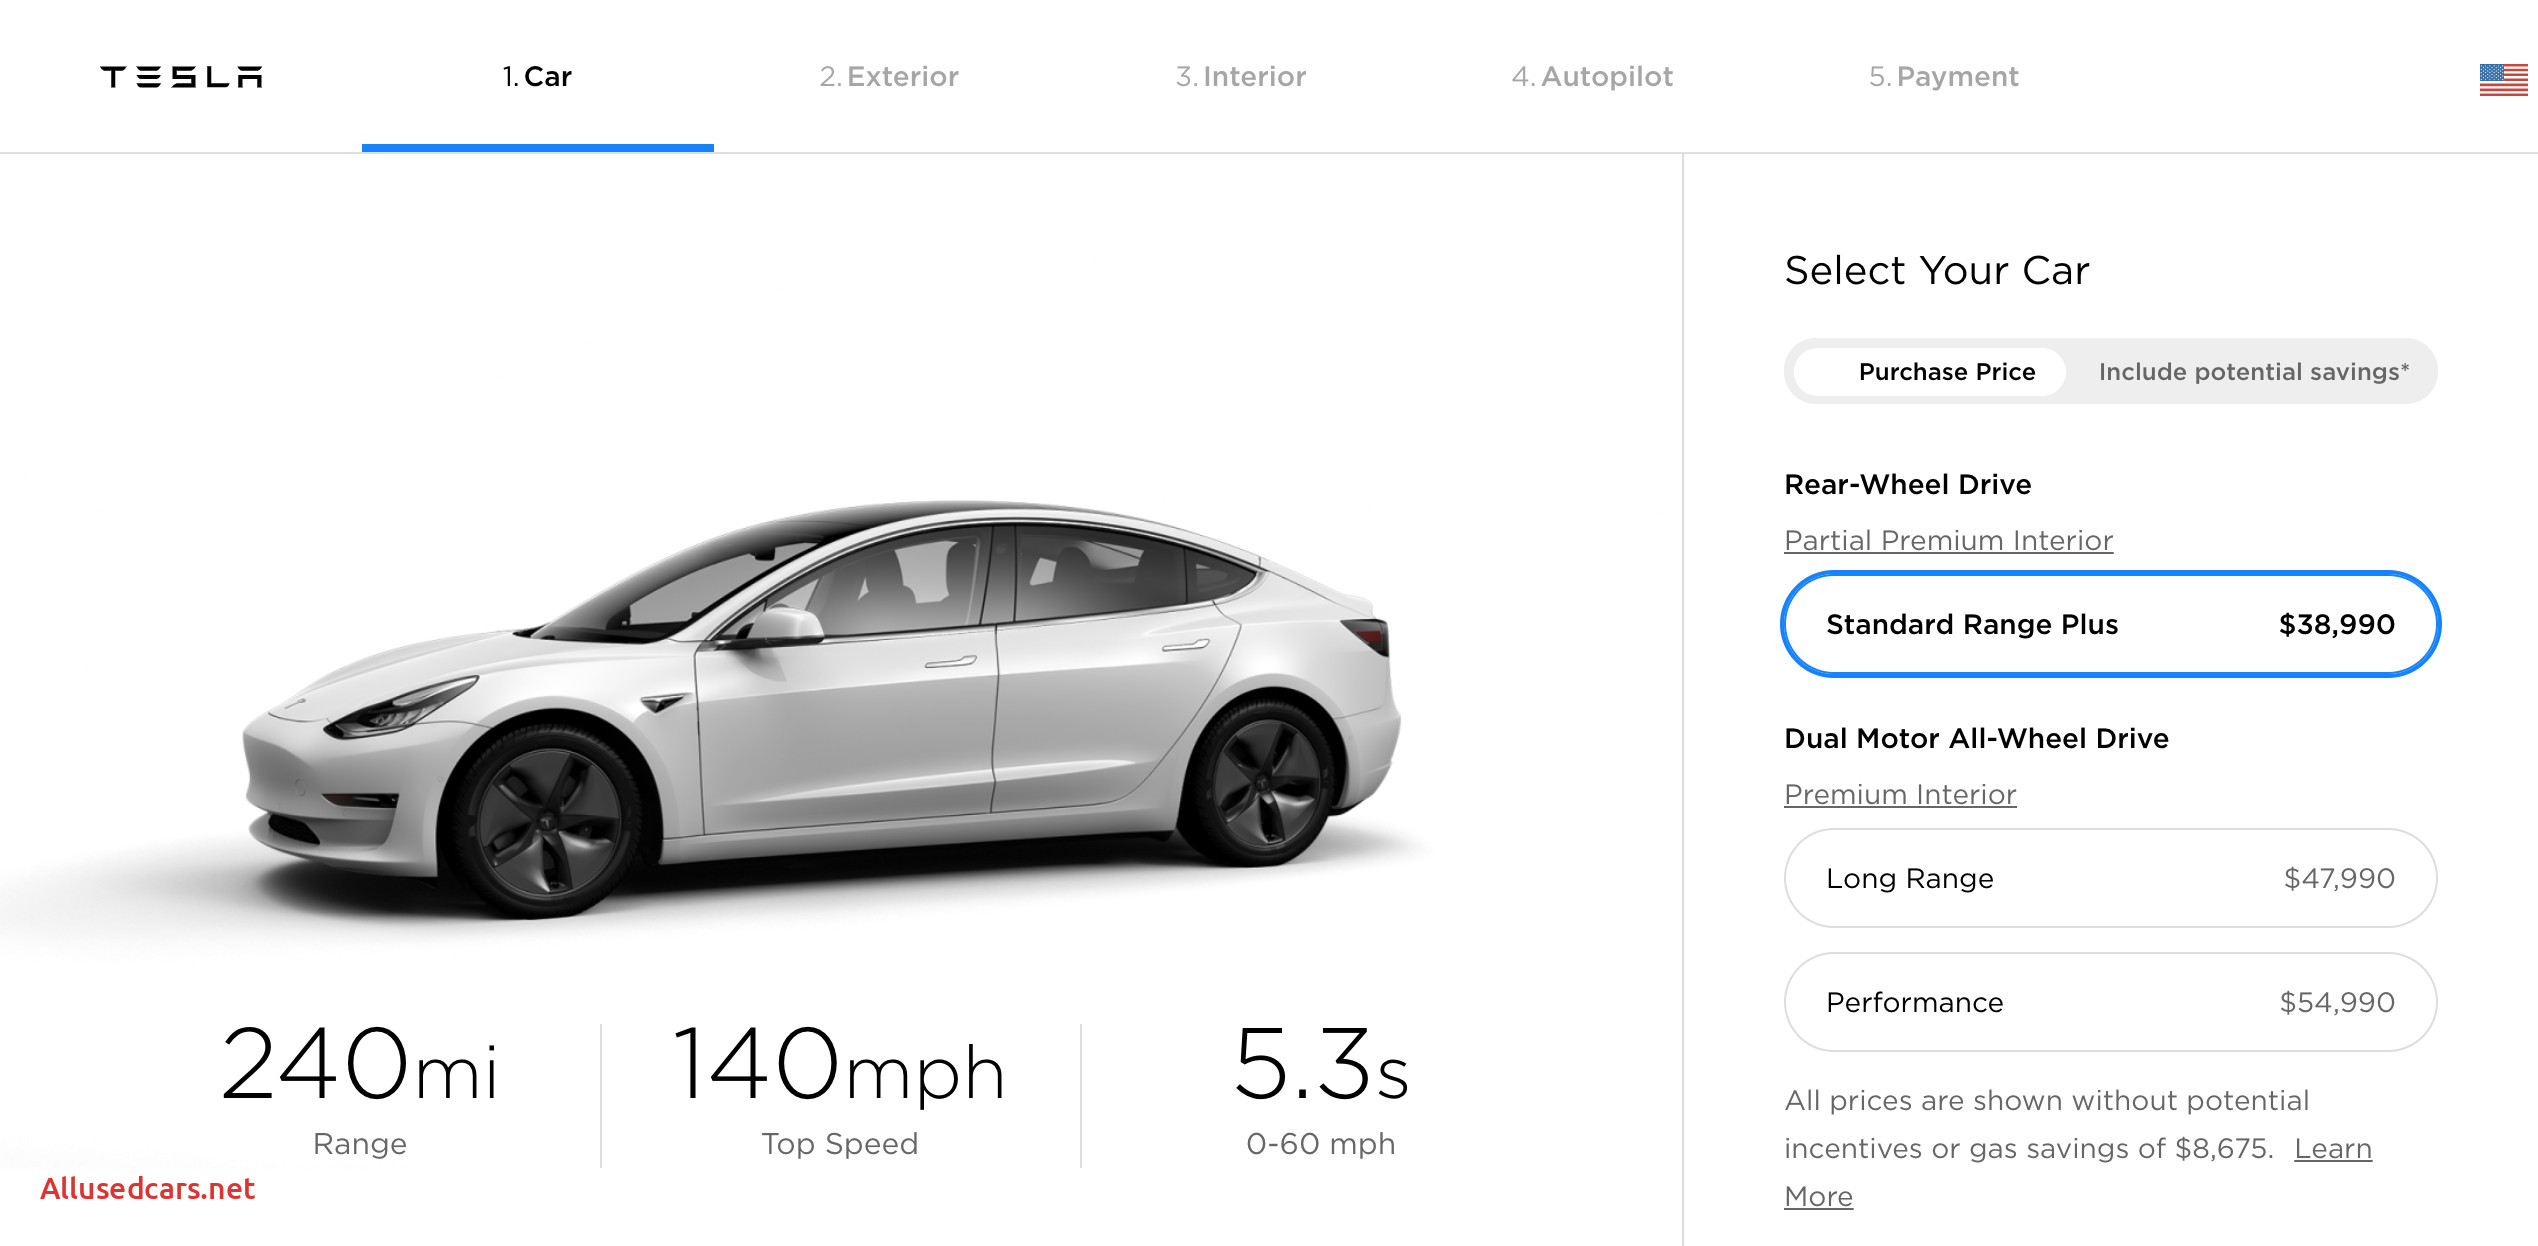 How Much Tesla Model 3 New Tesla Recalibrates Model 3 Pricing & Adds Long Range Option